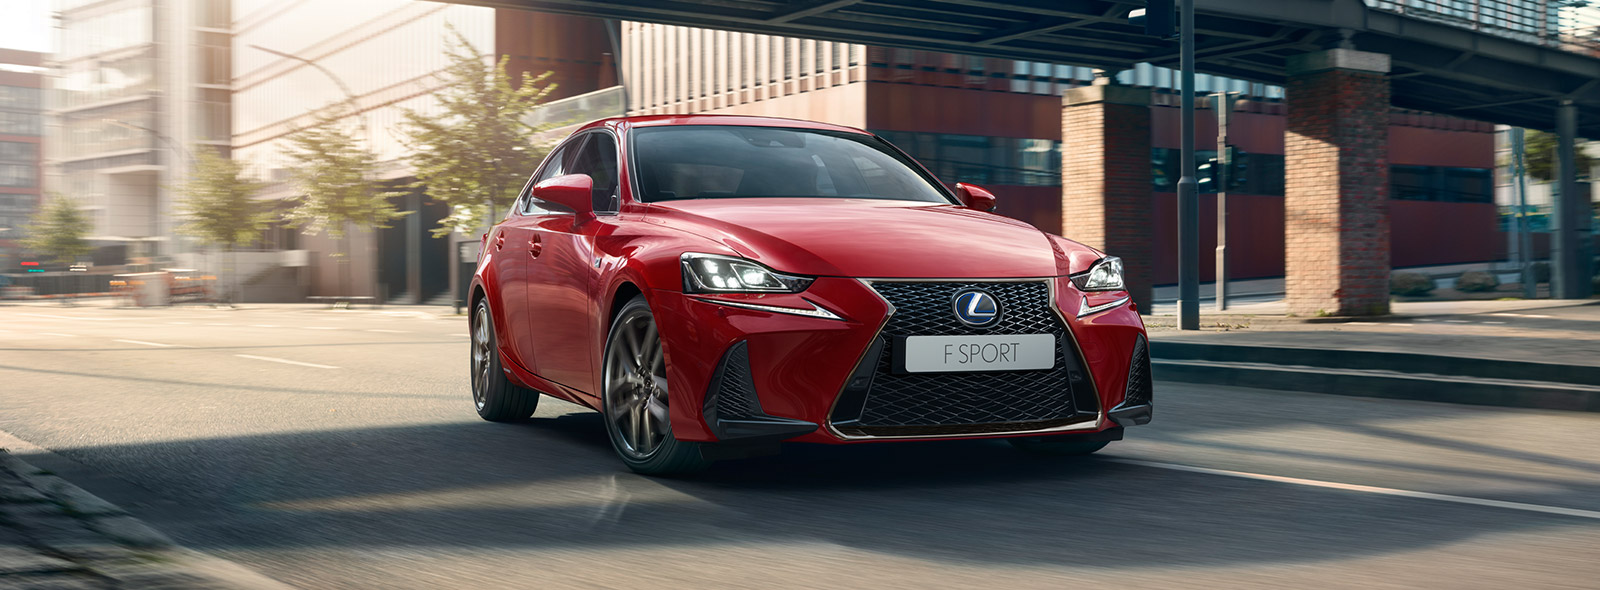 Lexus IS Hybrid MY17 colore rosso brillante con fari a LED